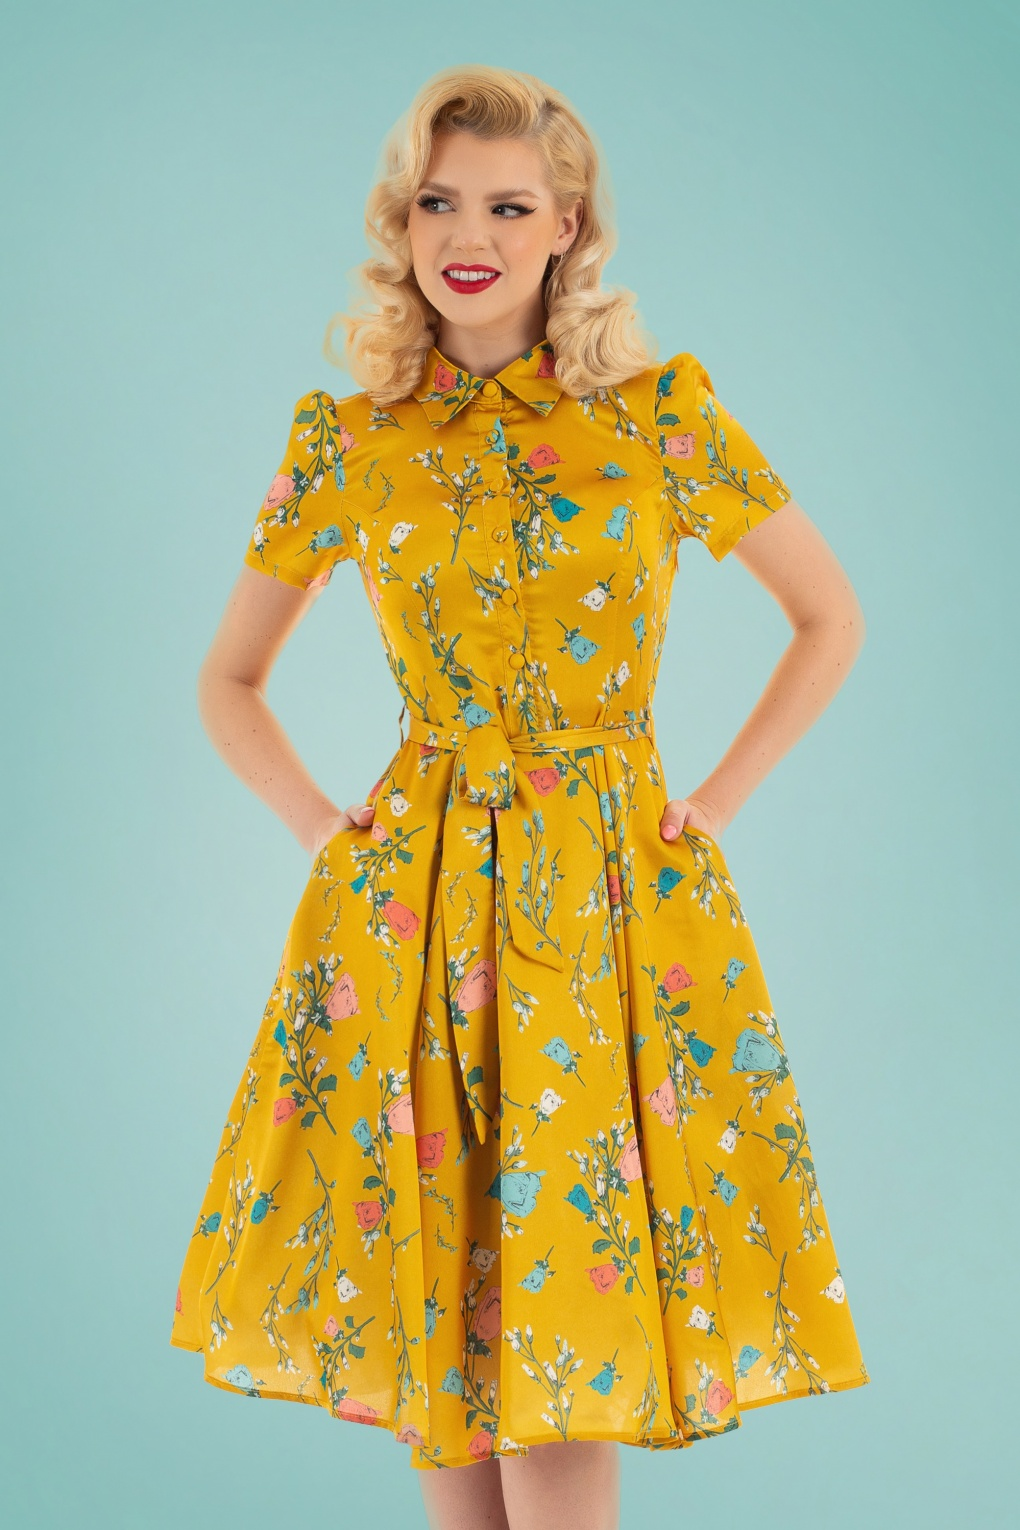 60s Fancy Dress and Quality Clothing 1960s UK 60s Yolanda Floral Swing Dress in Yellow £53.42 AT vintagedancer.com